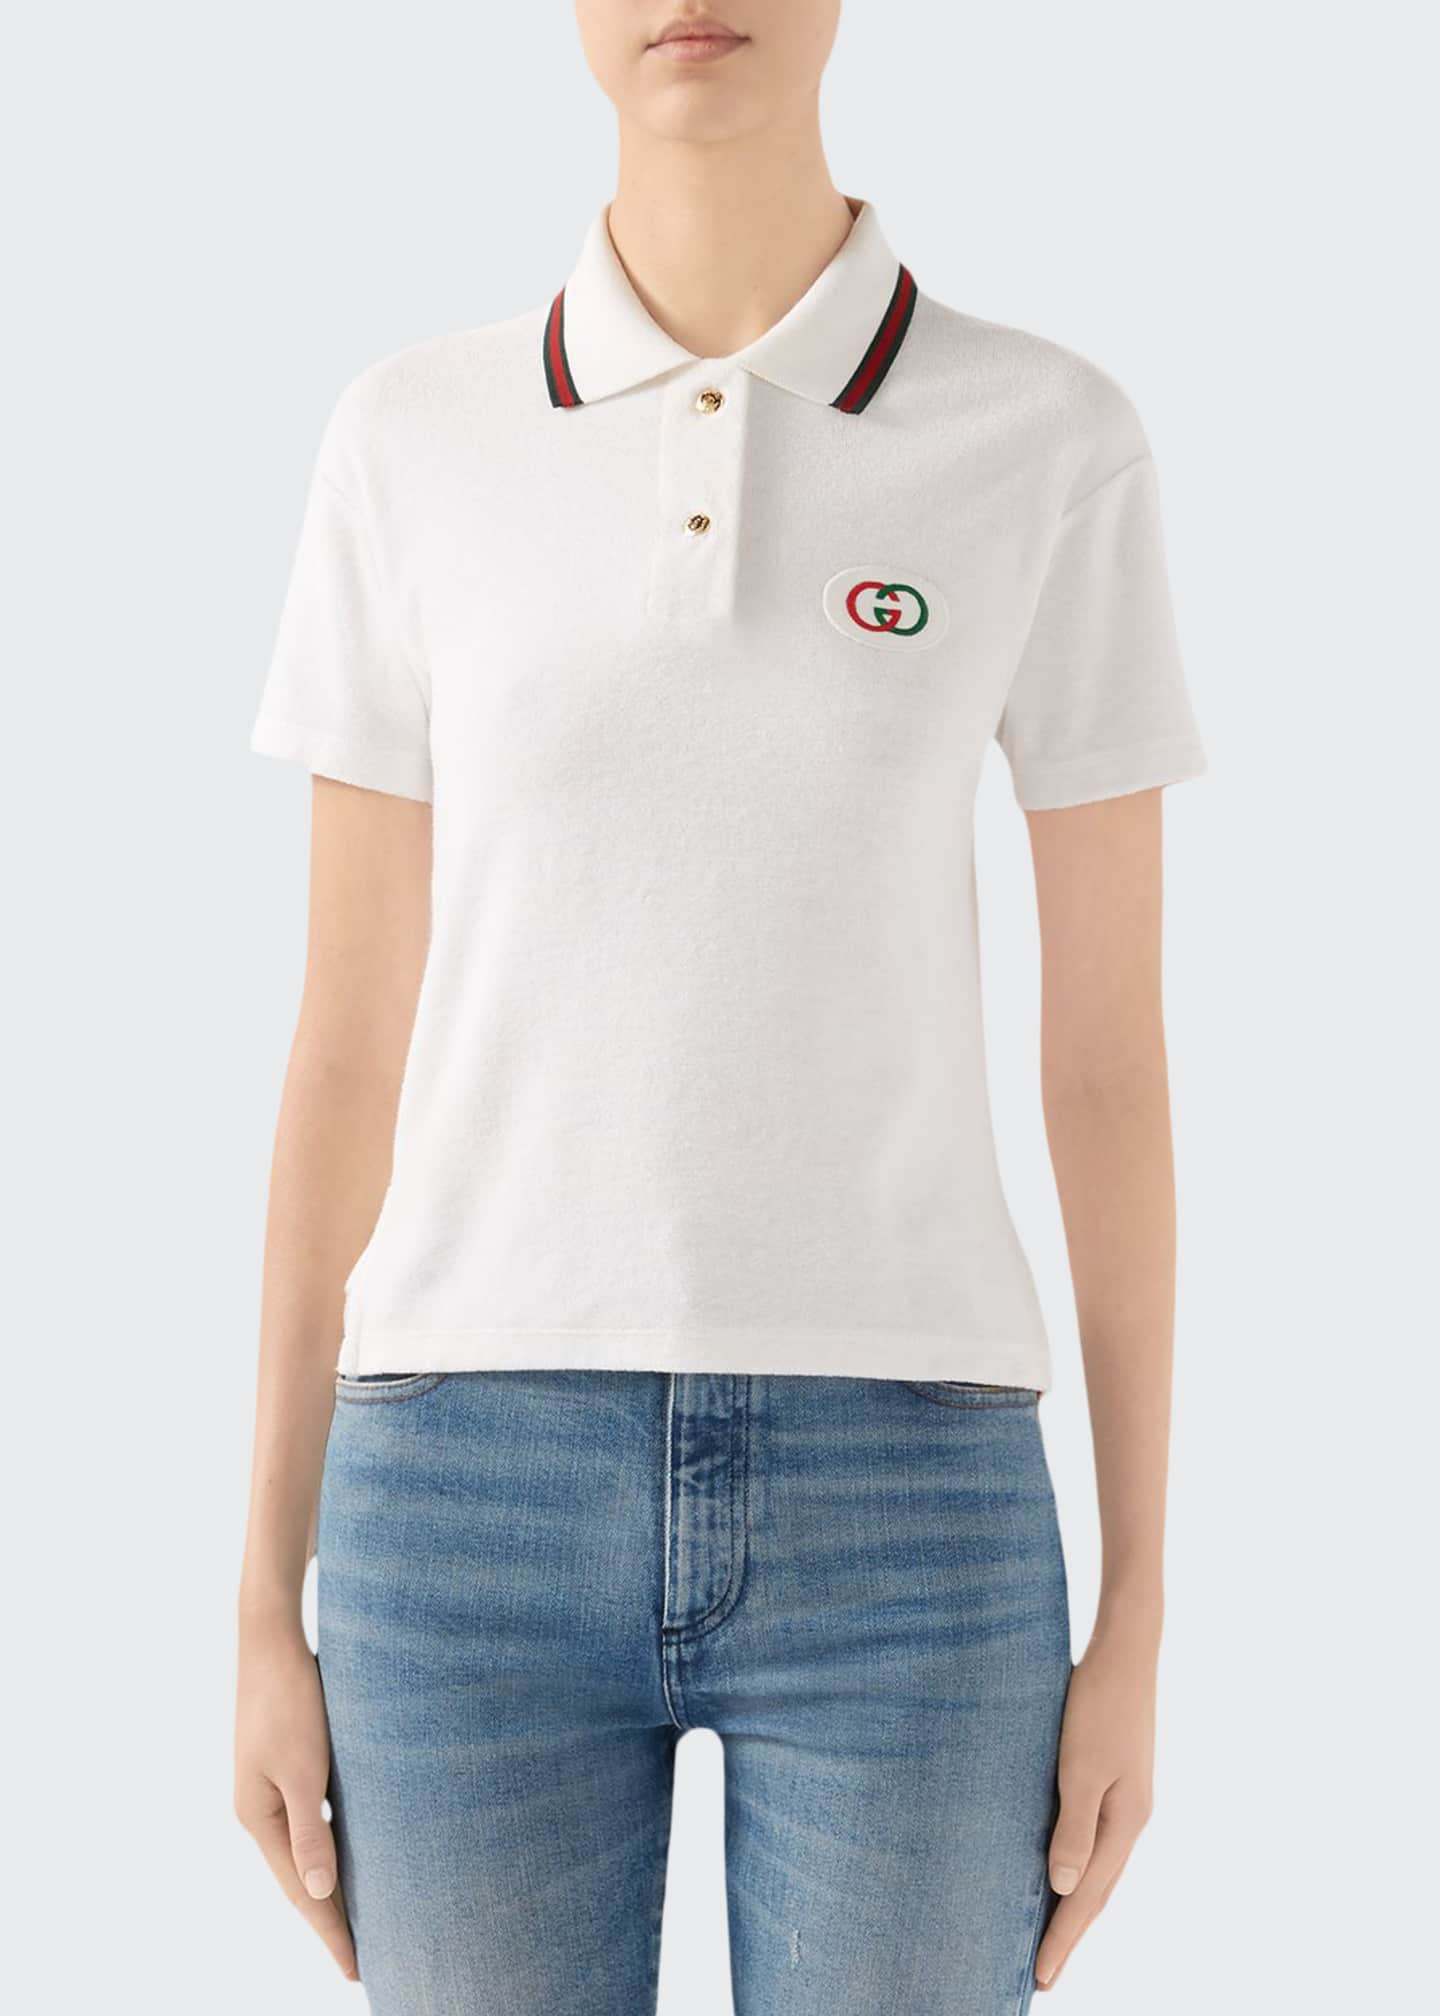 Short-Sleeve Terry Cloth Tennis Polo Top